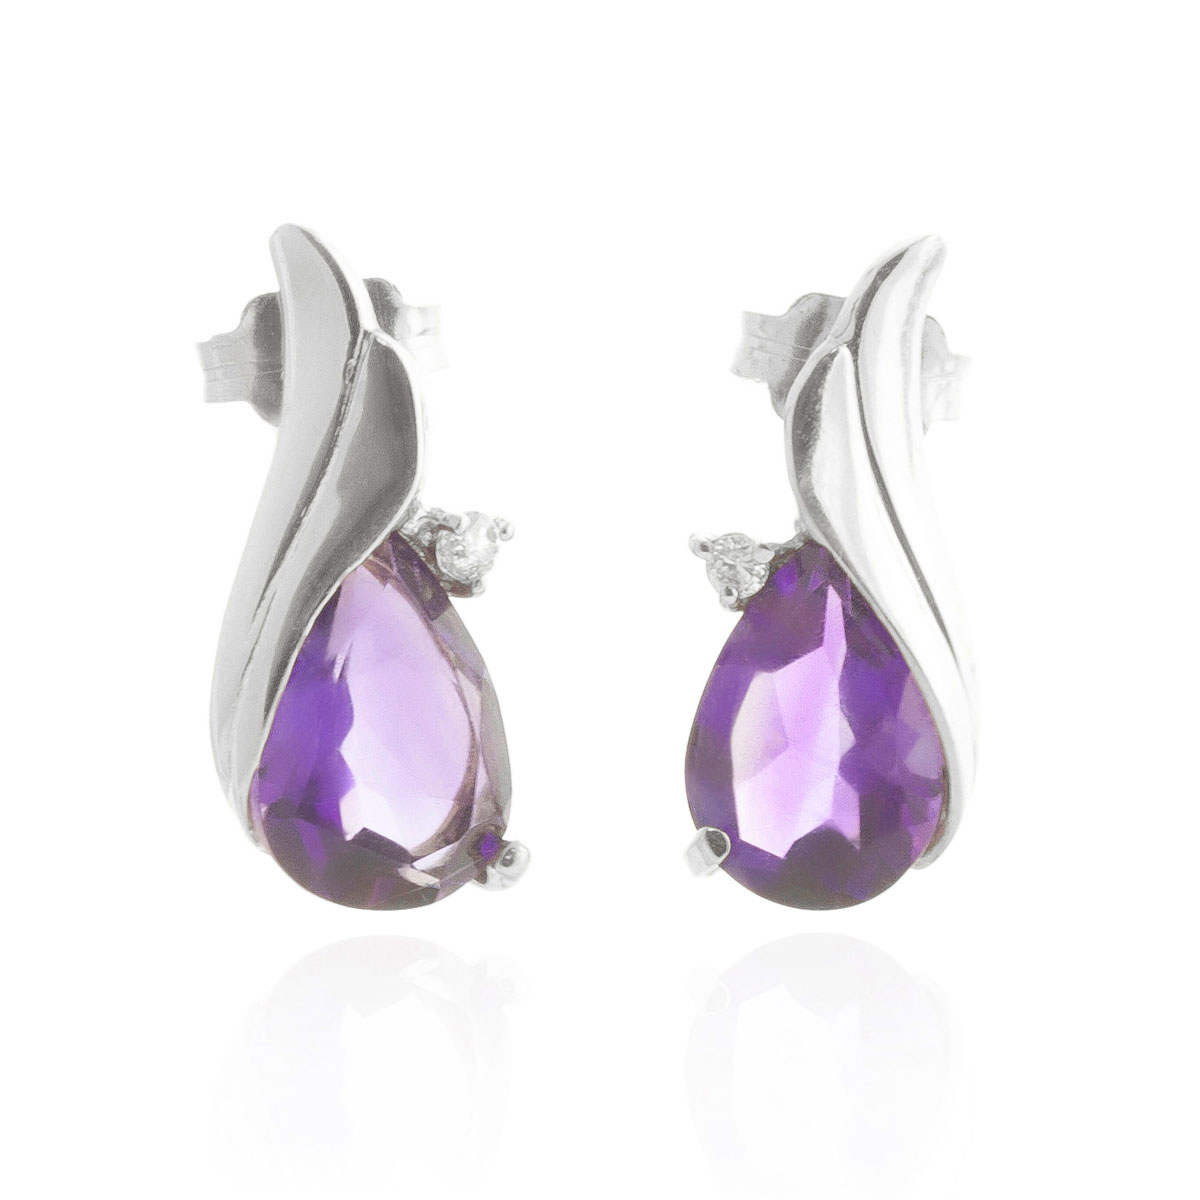 Amethyst Stud Earrings 3.16 ctw in 9ct White Gold